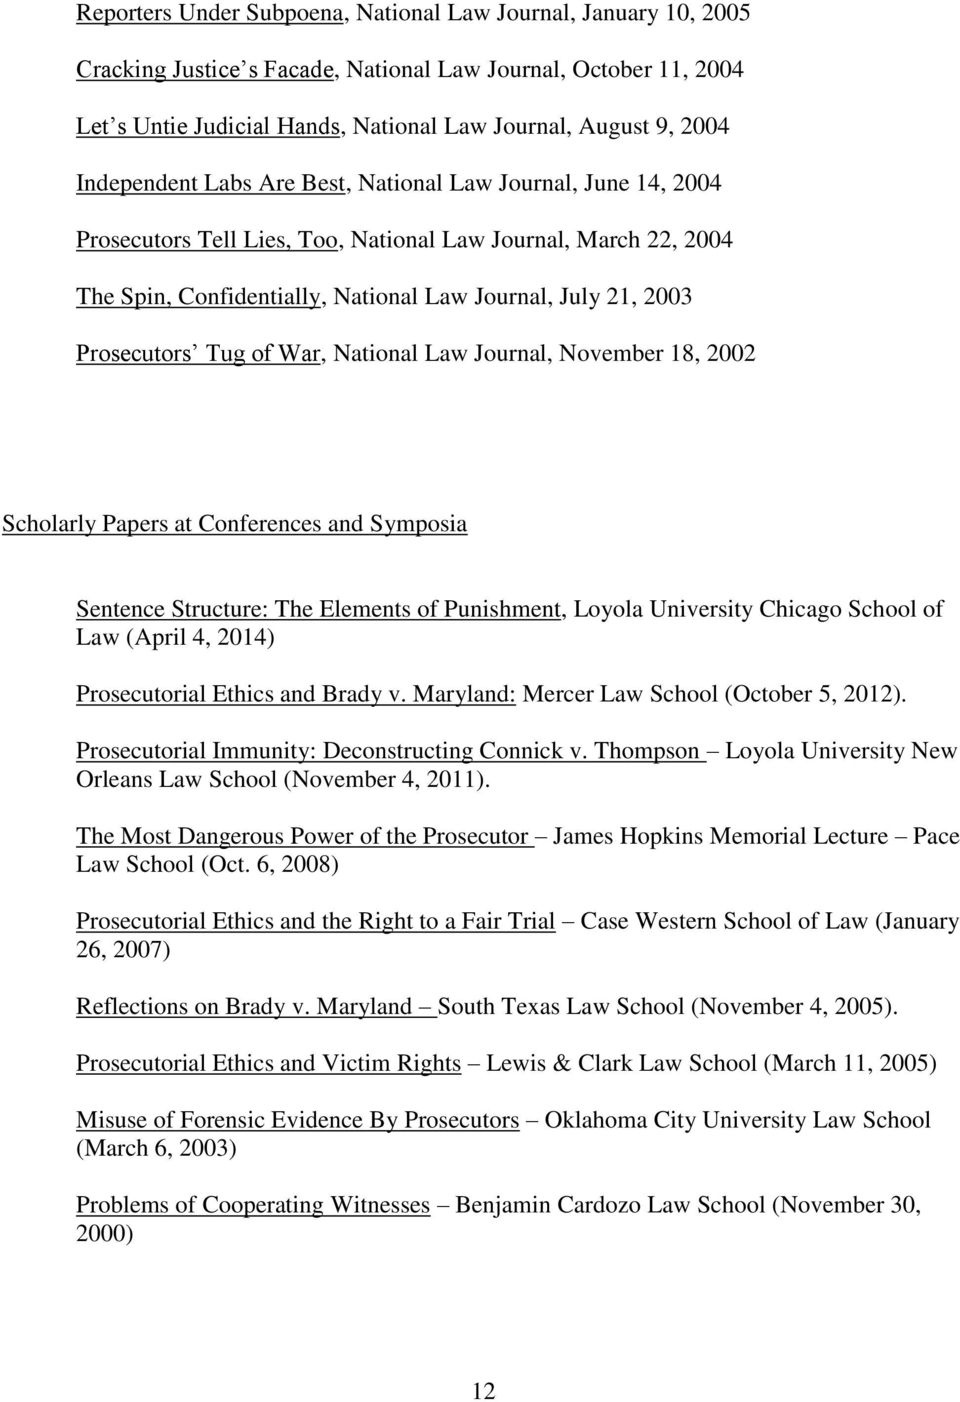 Prosecutors Tug of War, National Law Journal, November 18, 2002 Scholarly Papers at Conferences and Symposia Sentence Structure: The Elements of Punishment, Loyola University Chicago School of Law